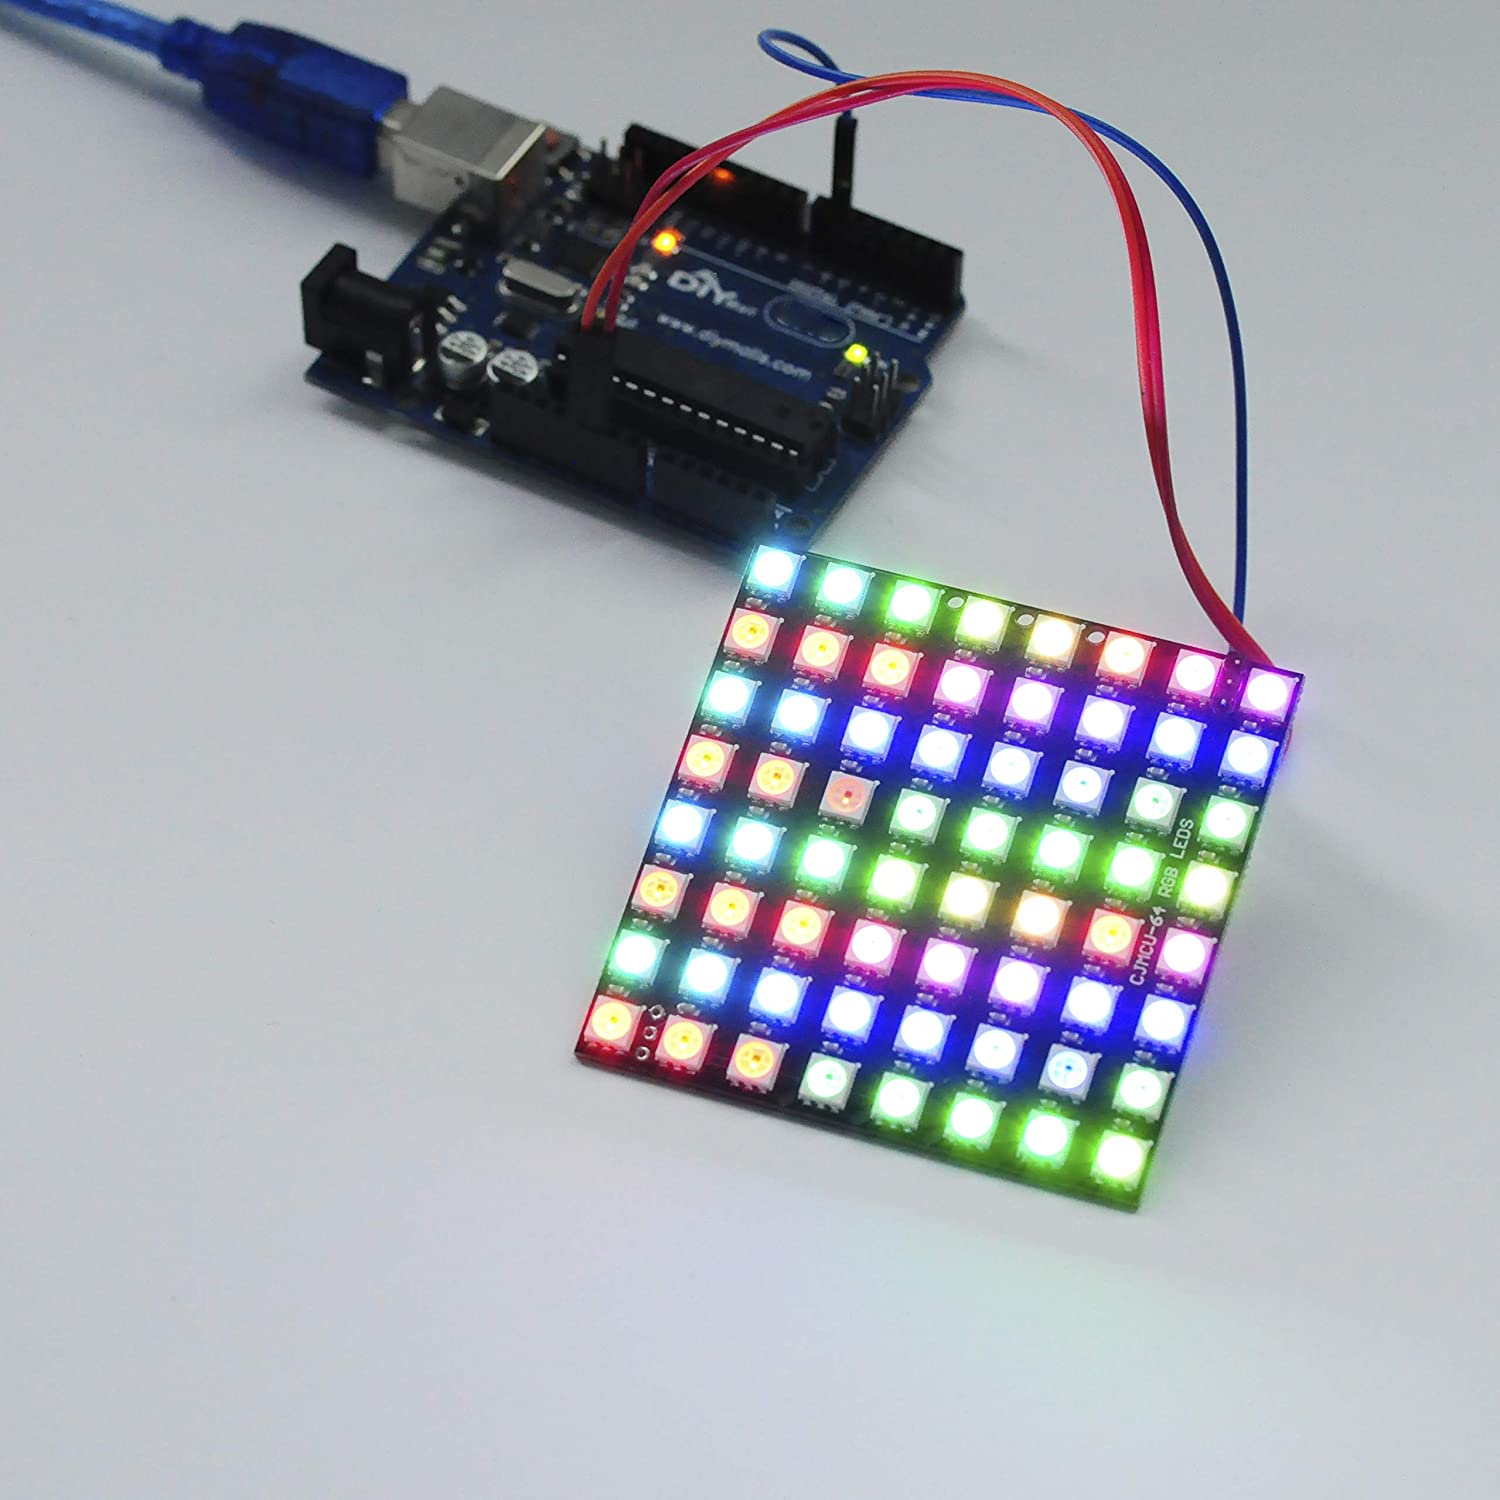 64 LED Matrix WS2812 LED 8x8 5050 RGB Full-Color Driver Board For Arduino New